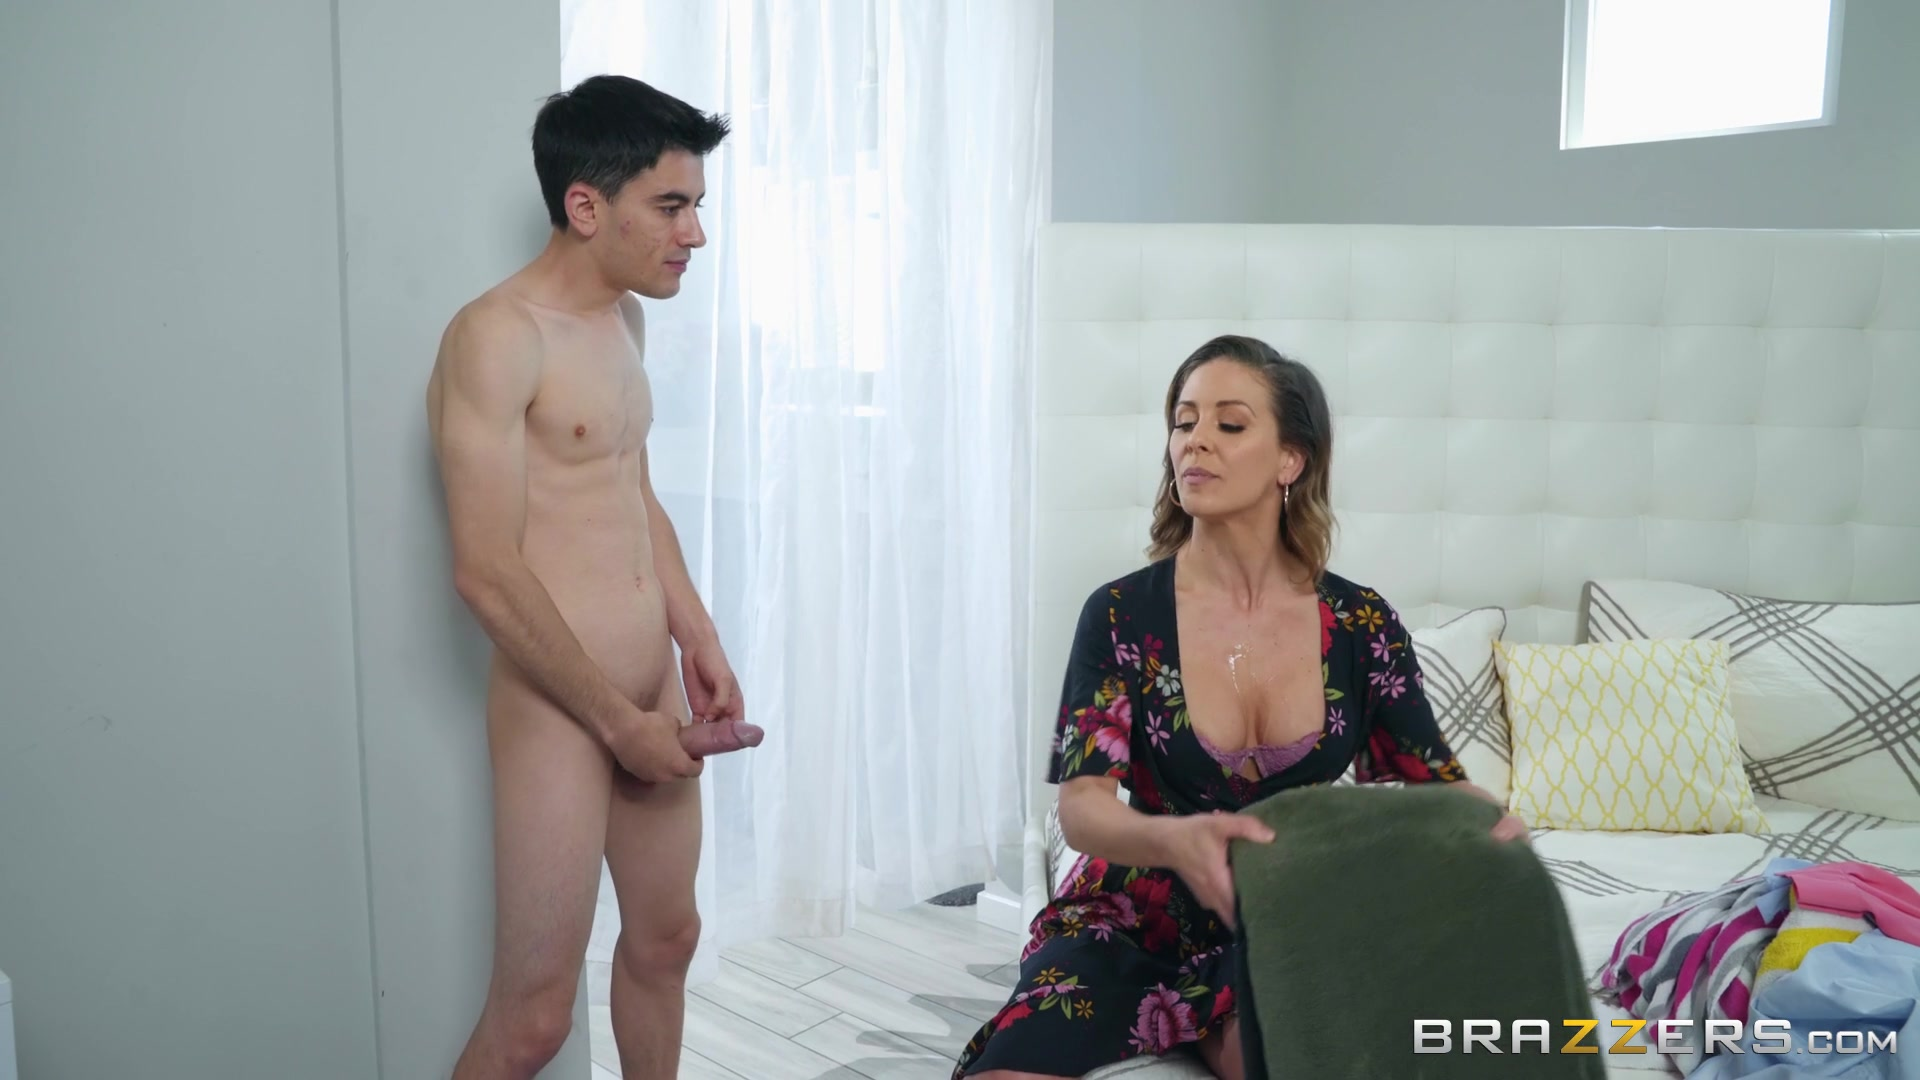 are amazing gay scene gage and sergio definitely beat it congratulate, this excellent